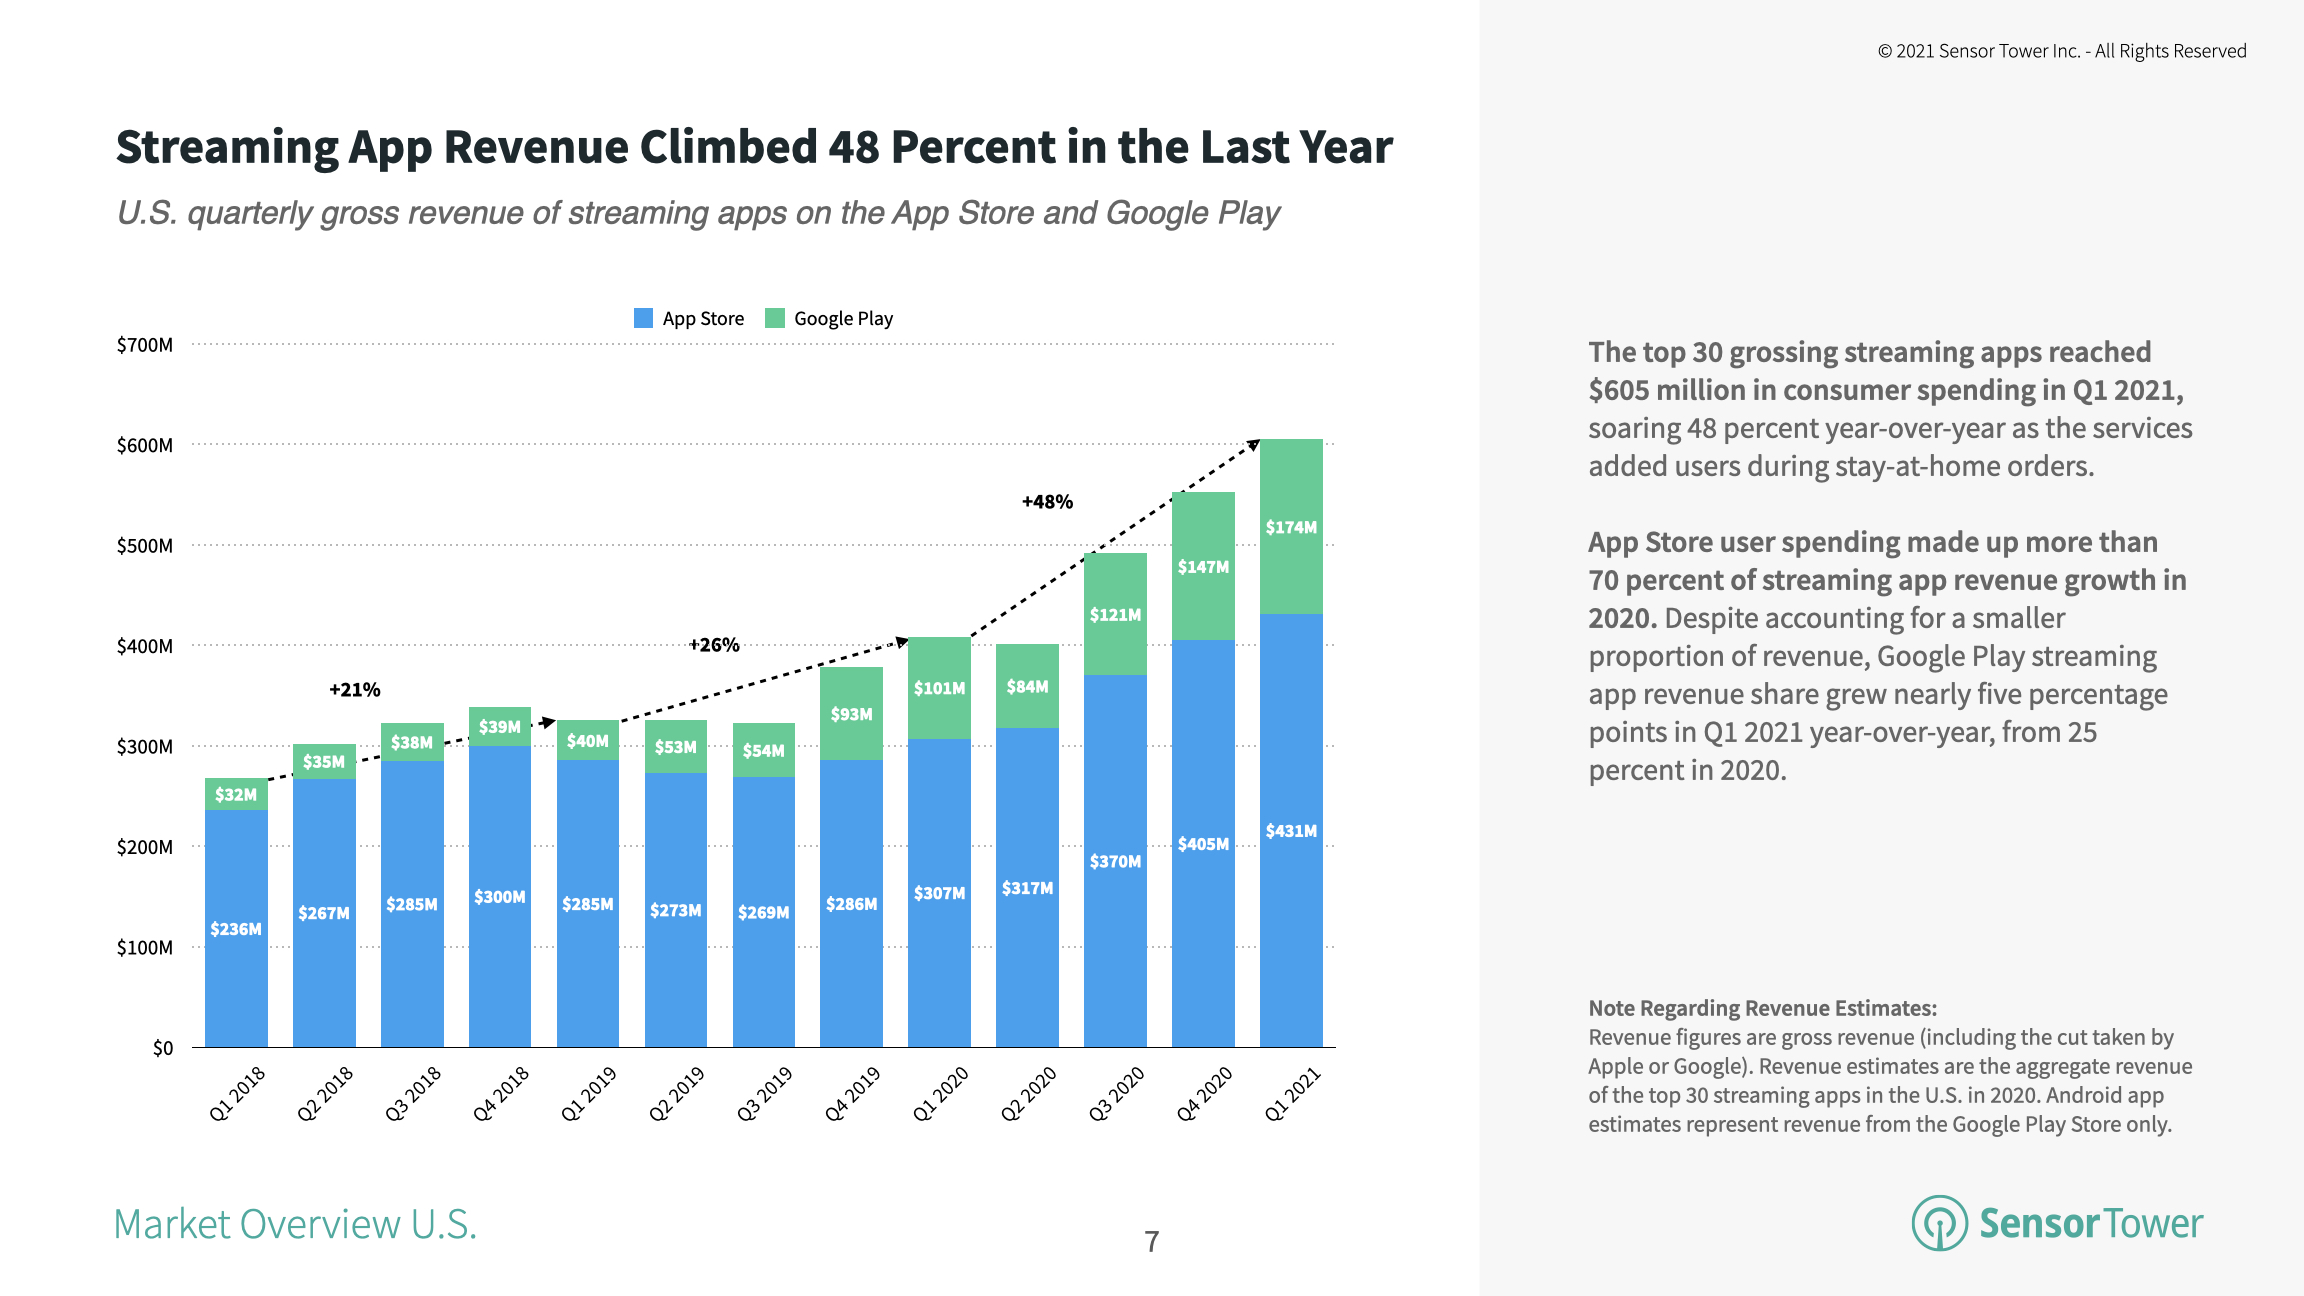 The top U.S. streaming apps saw their revenue climb 48 percent year-over-year to $605 million in Q1 2021.